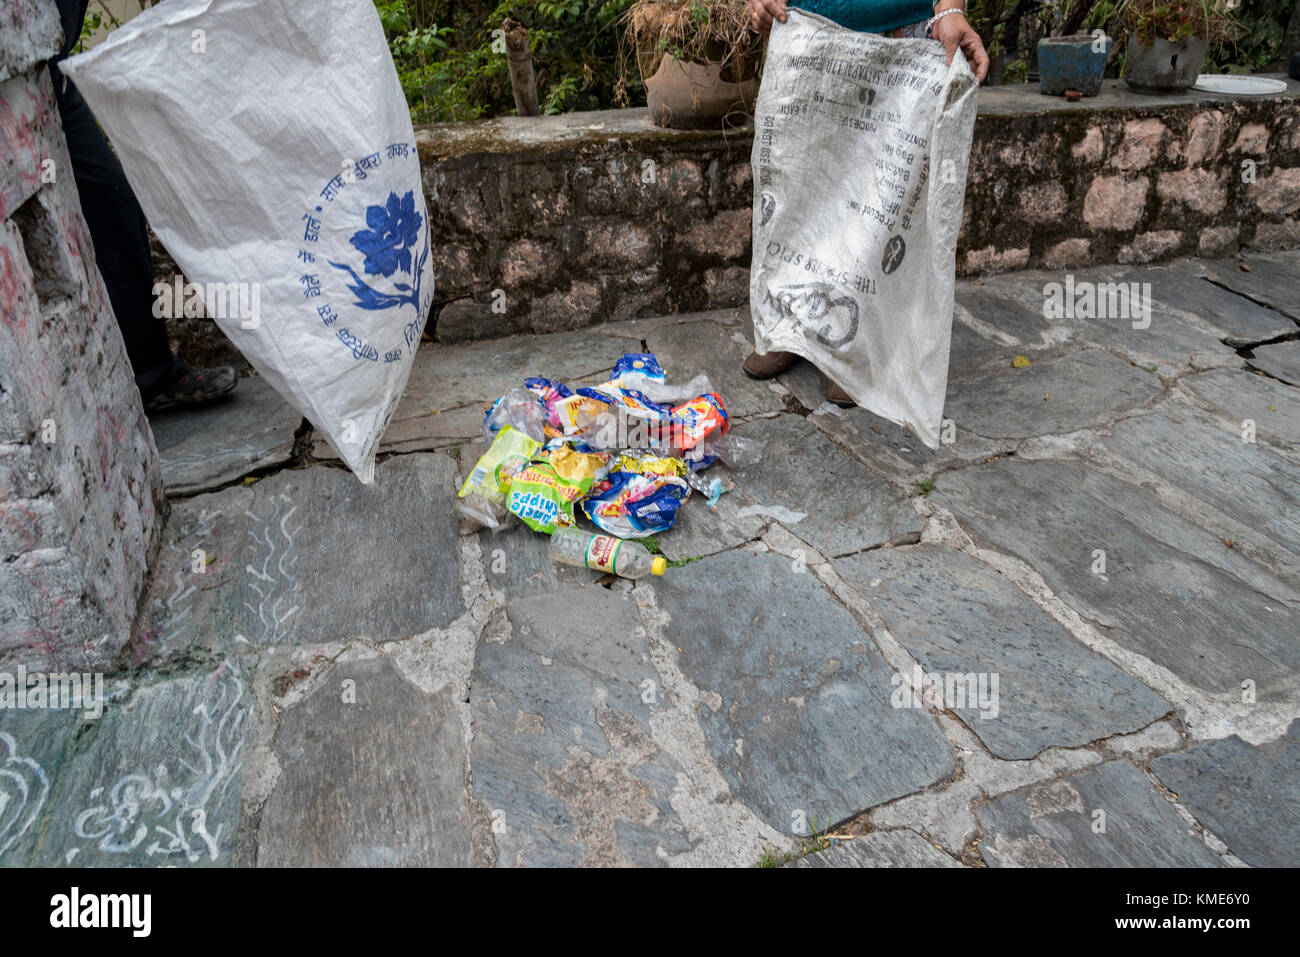 People managing plastic waste to prevent the ill effects of it. - Stock Image